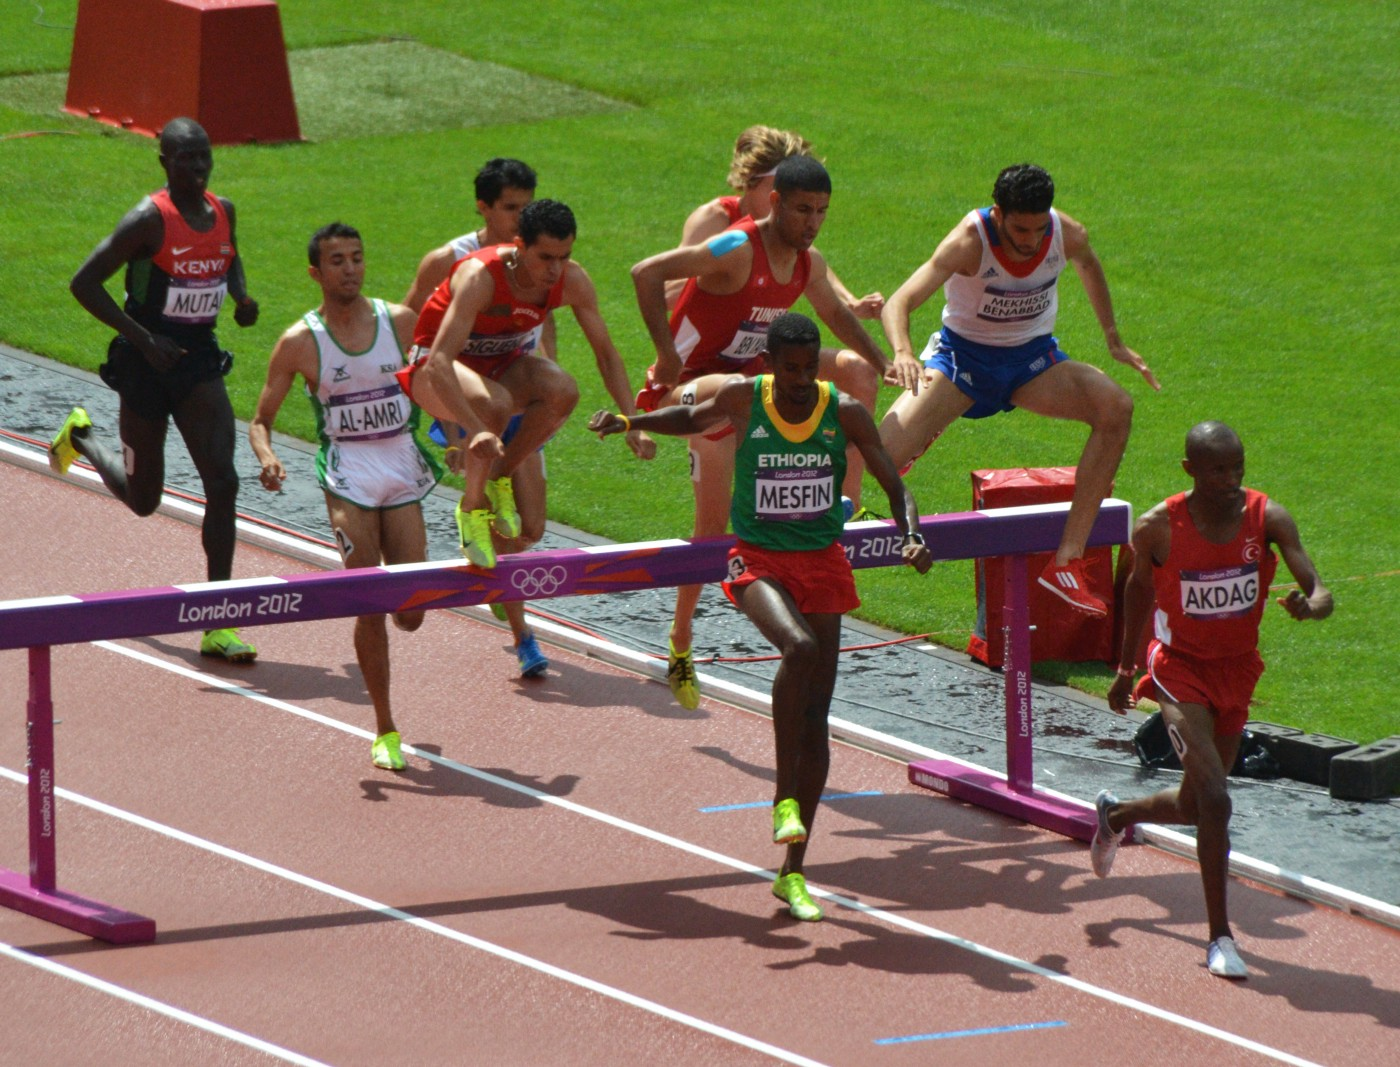 Male runners in steeplechase heat jumping over a hurdle on a running track